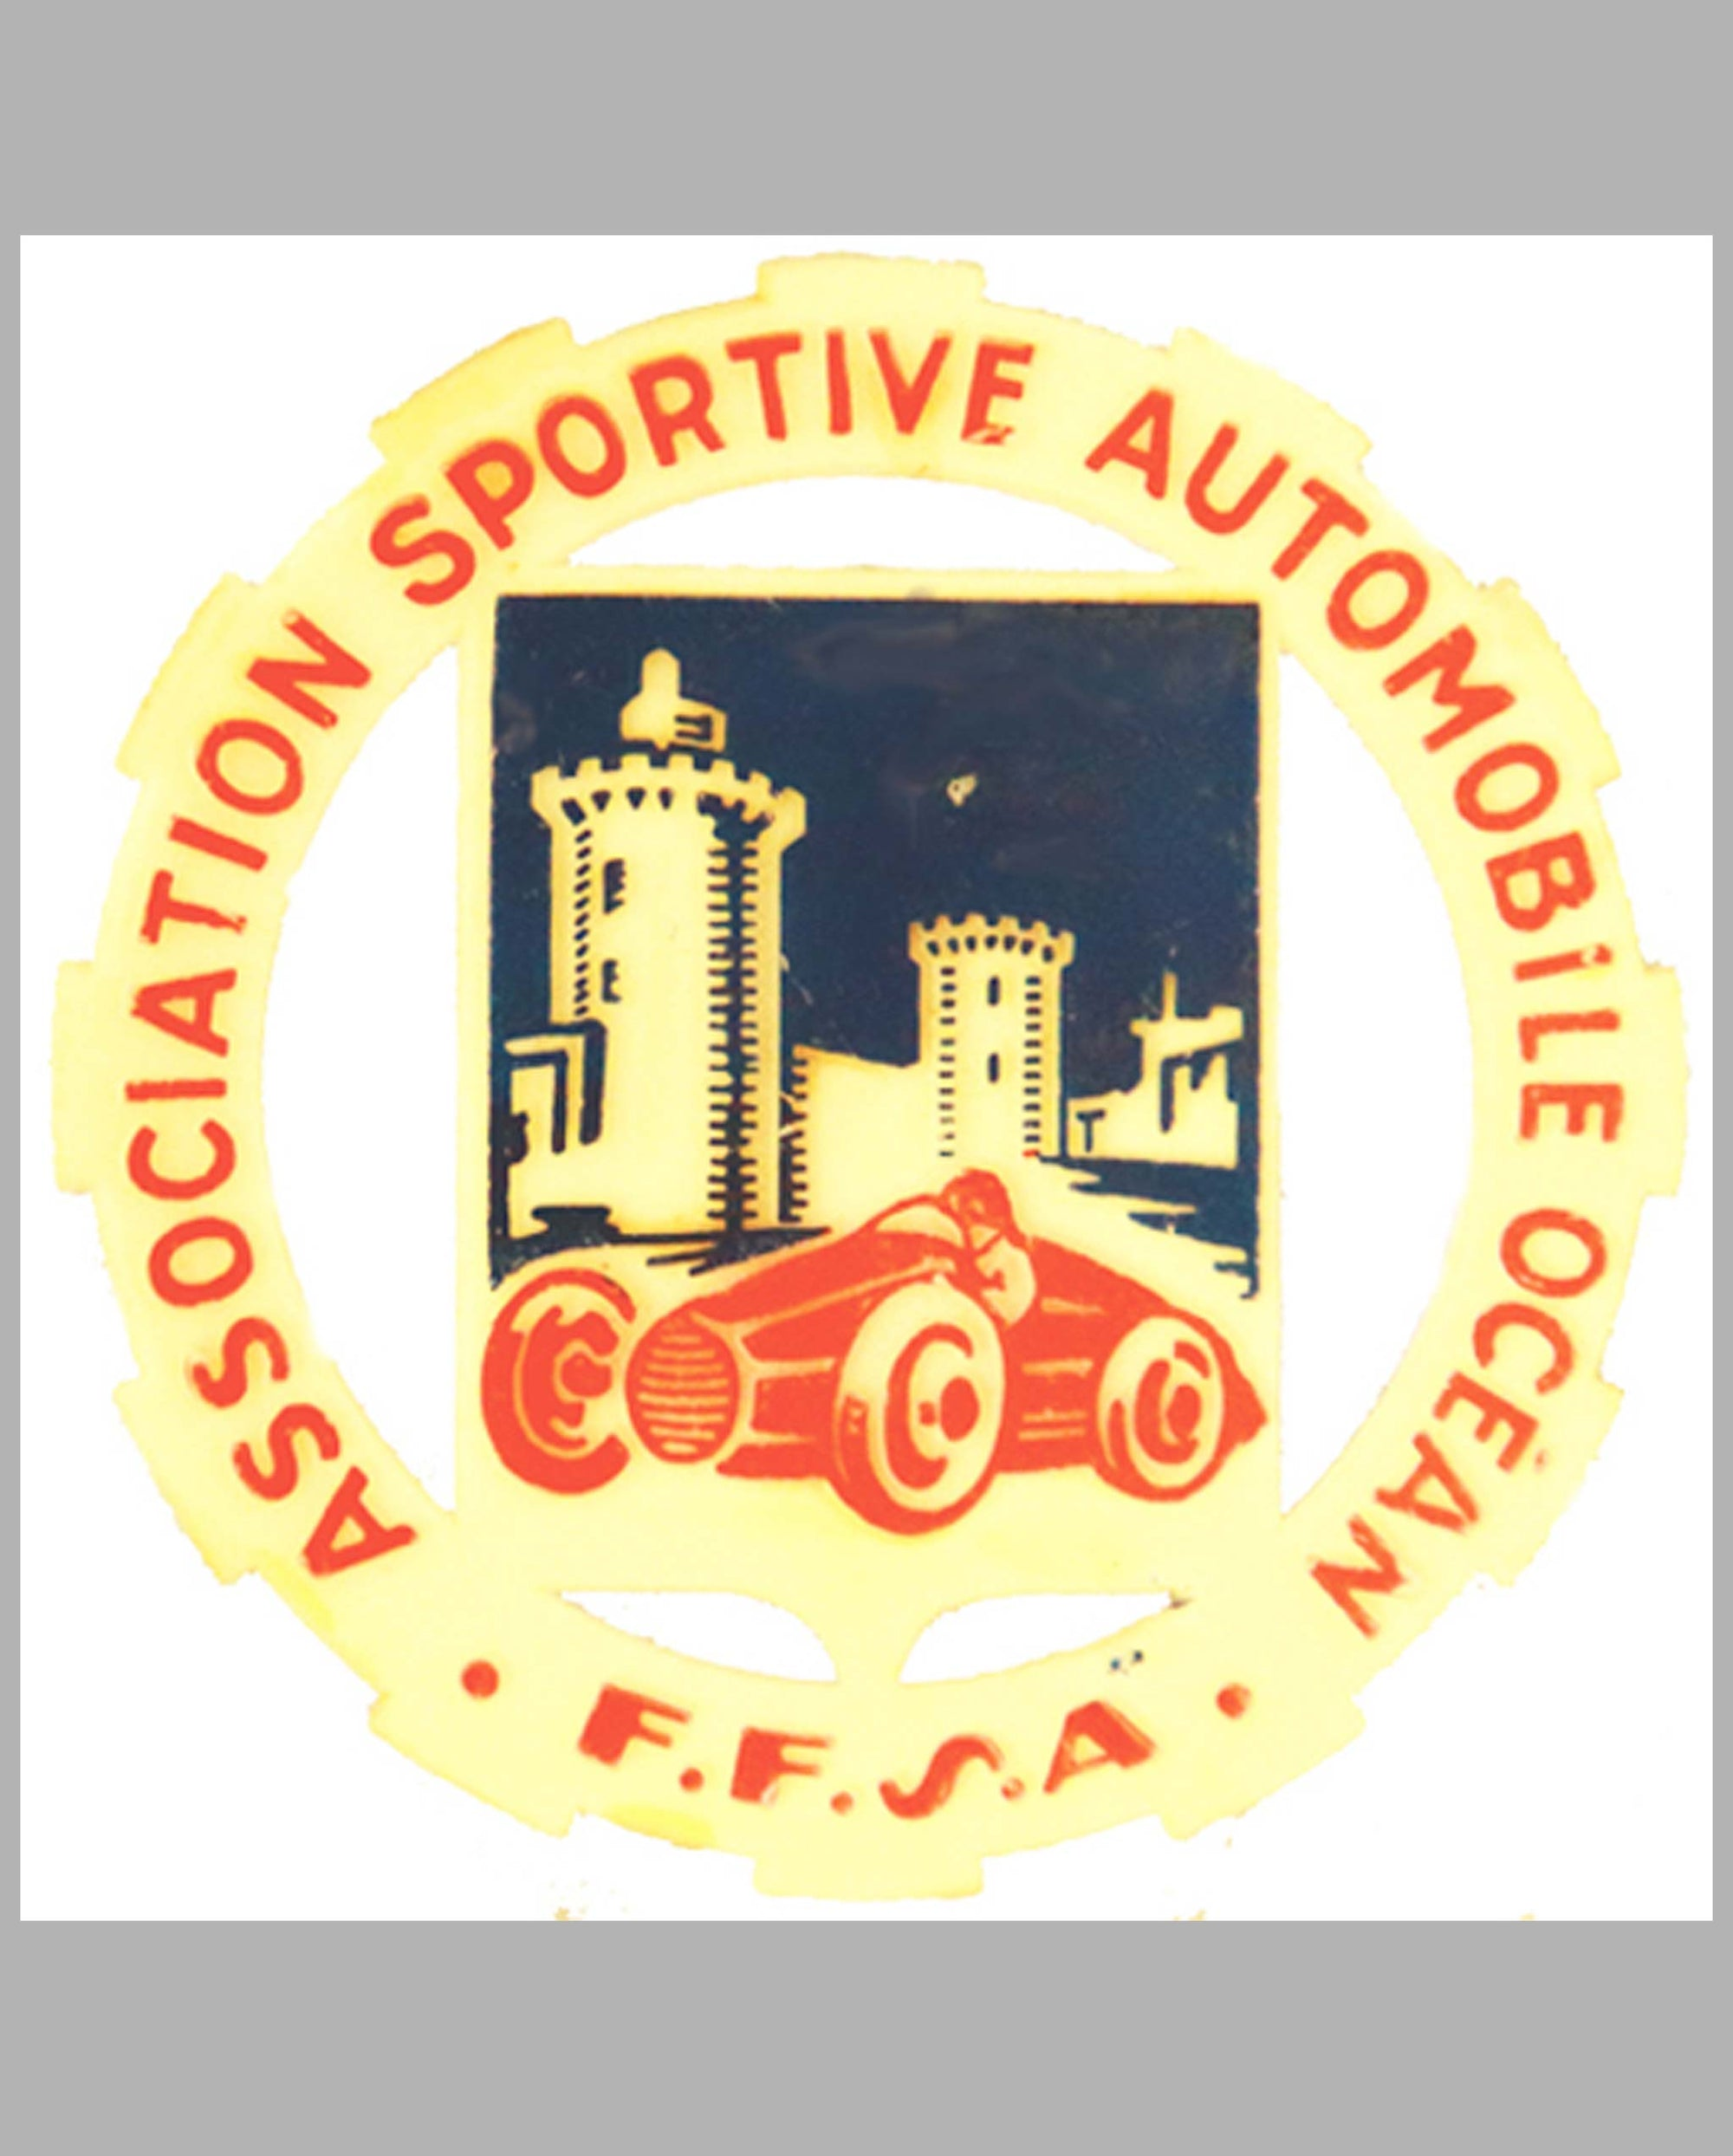 Association Sportive Automobile Ocean FFSA member's badge, France